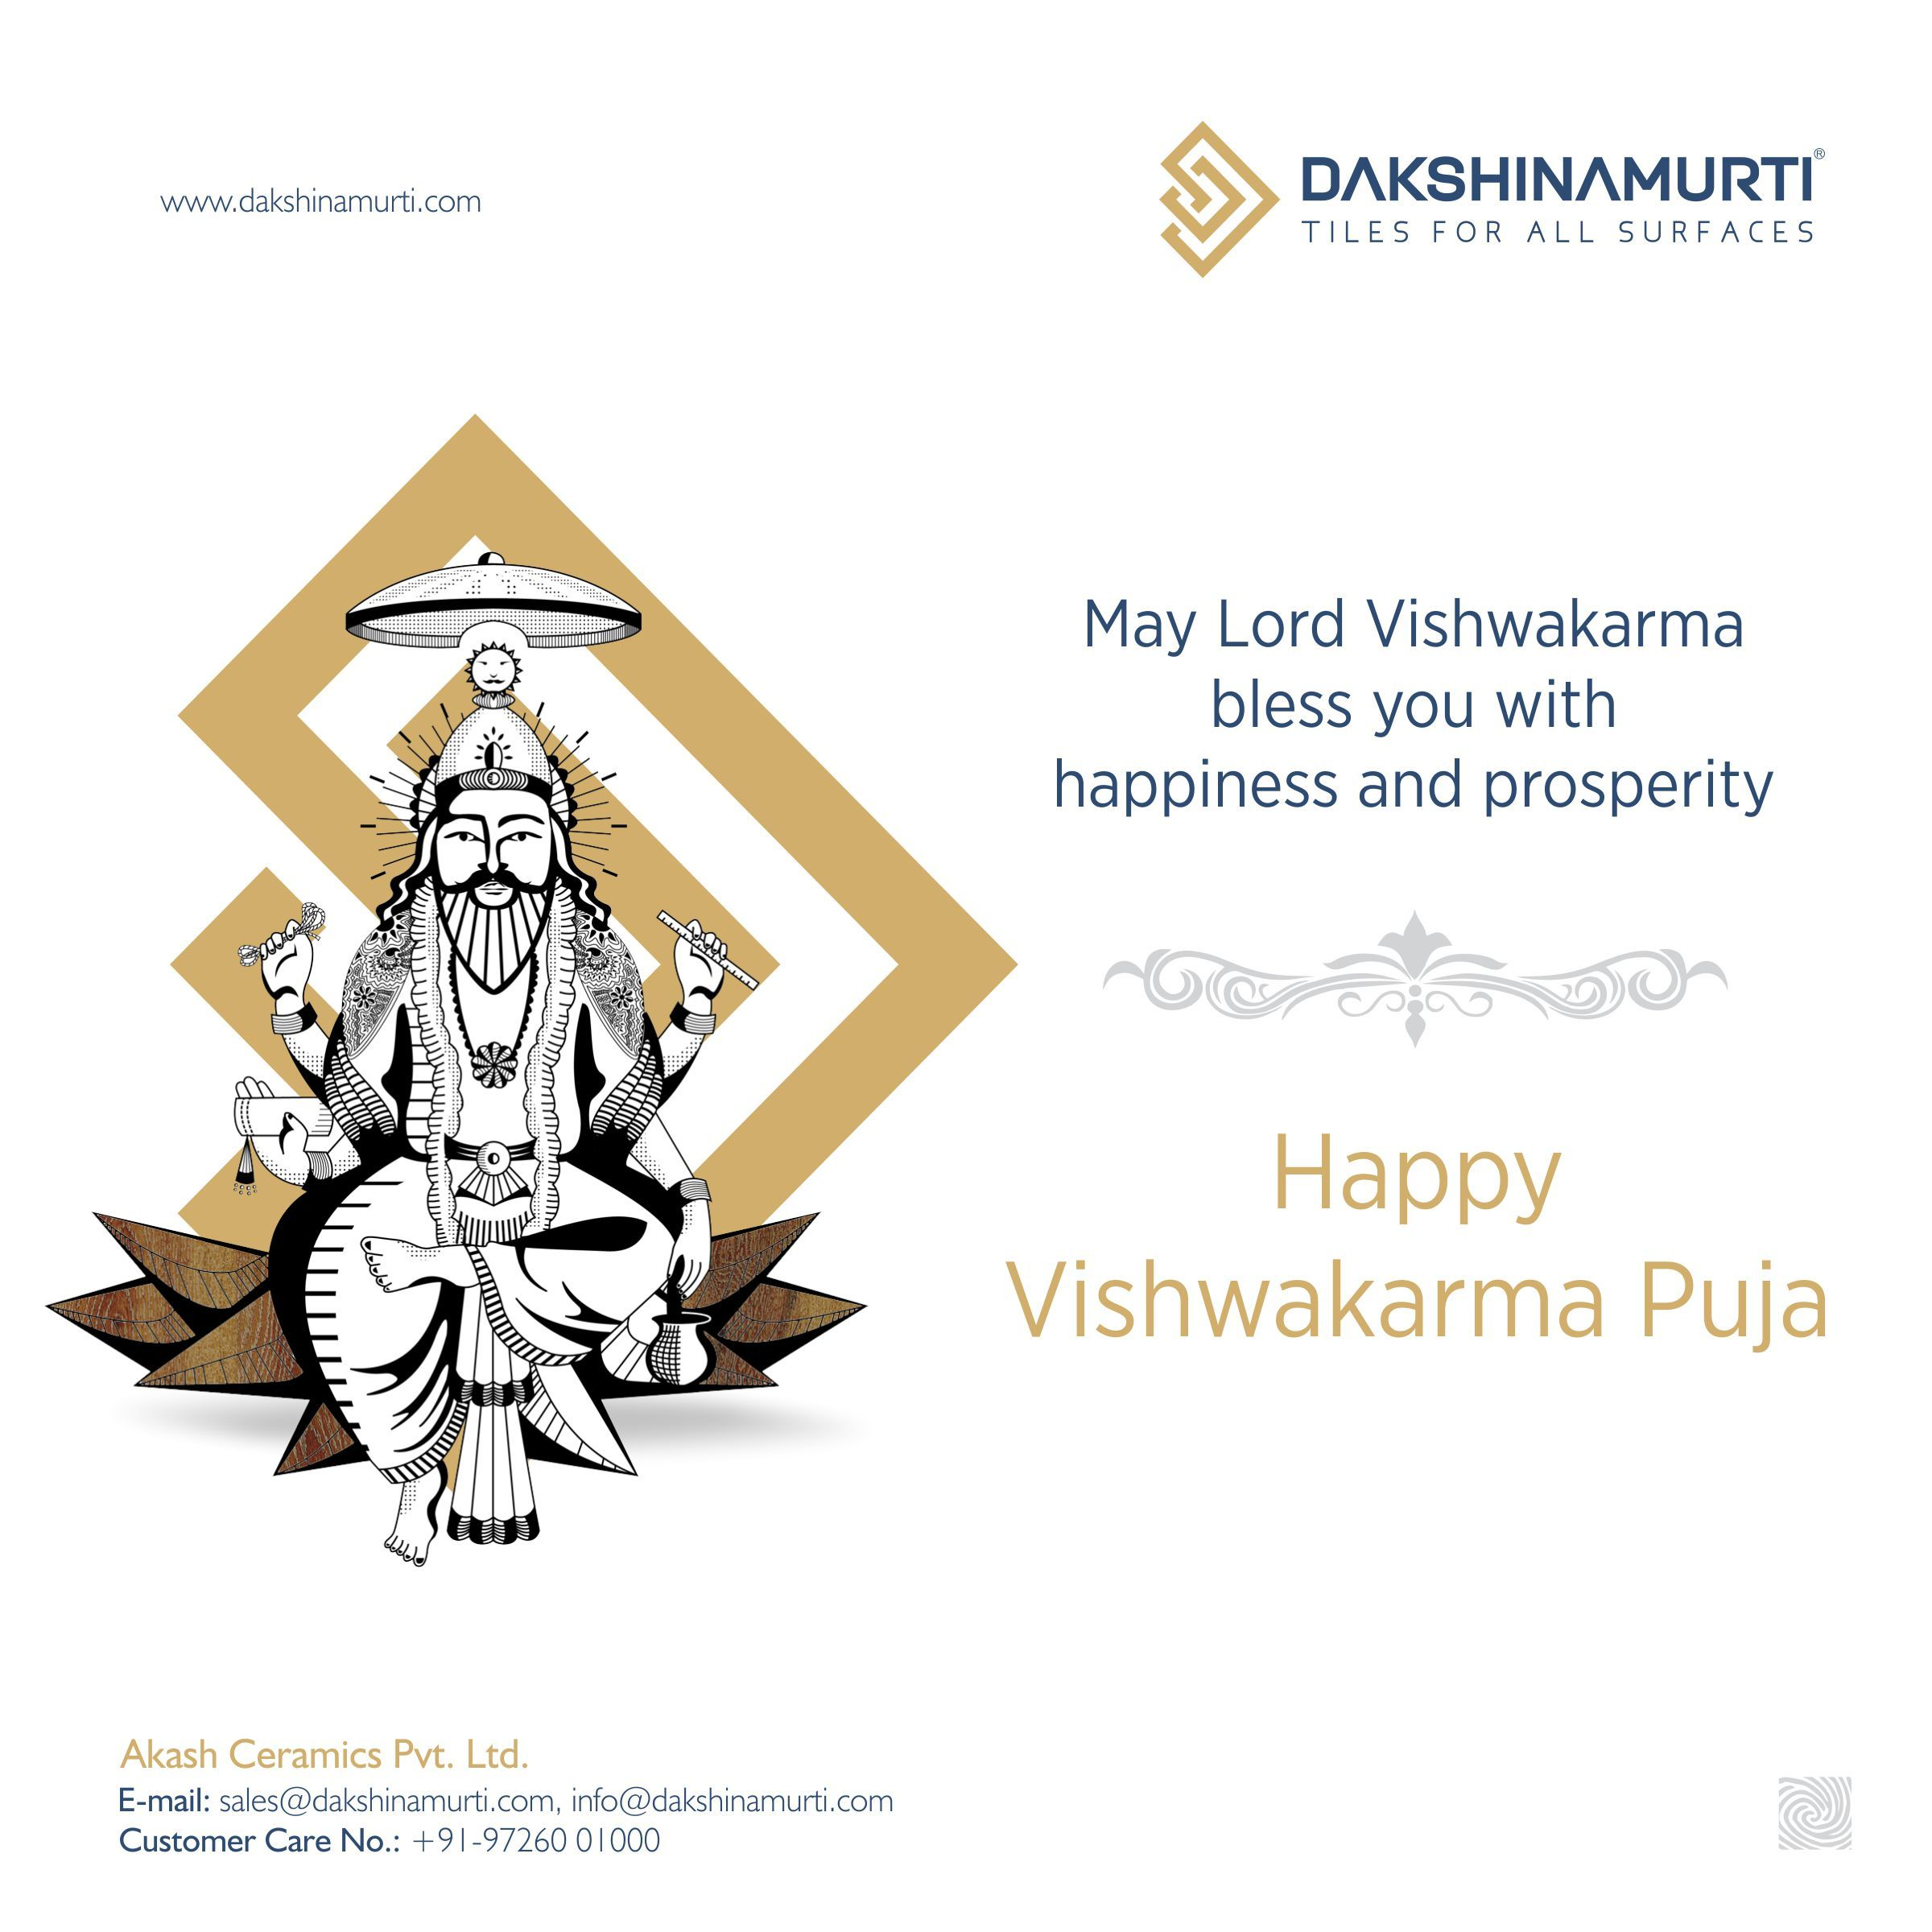 May Lord Vishwakarma Bless You With Happiness And Prosperity